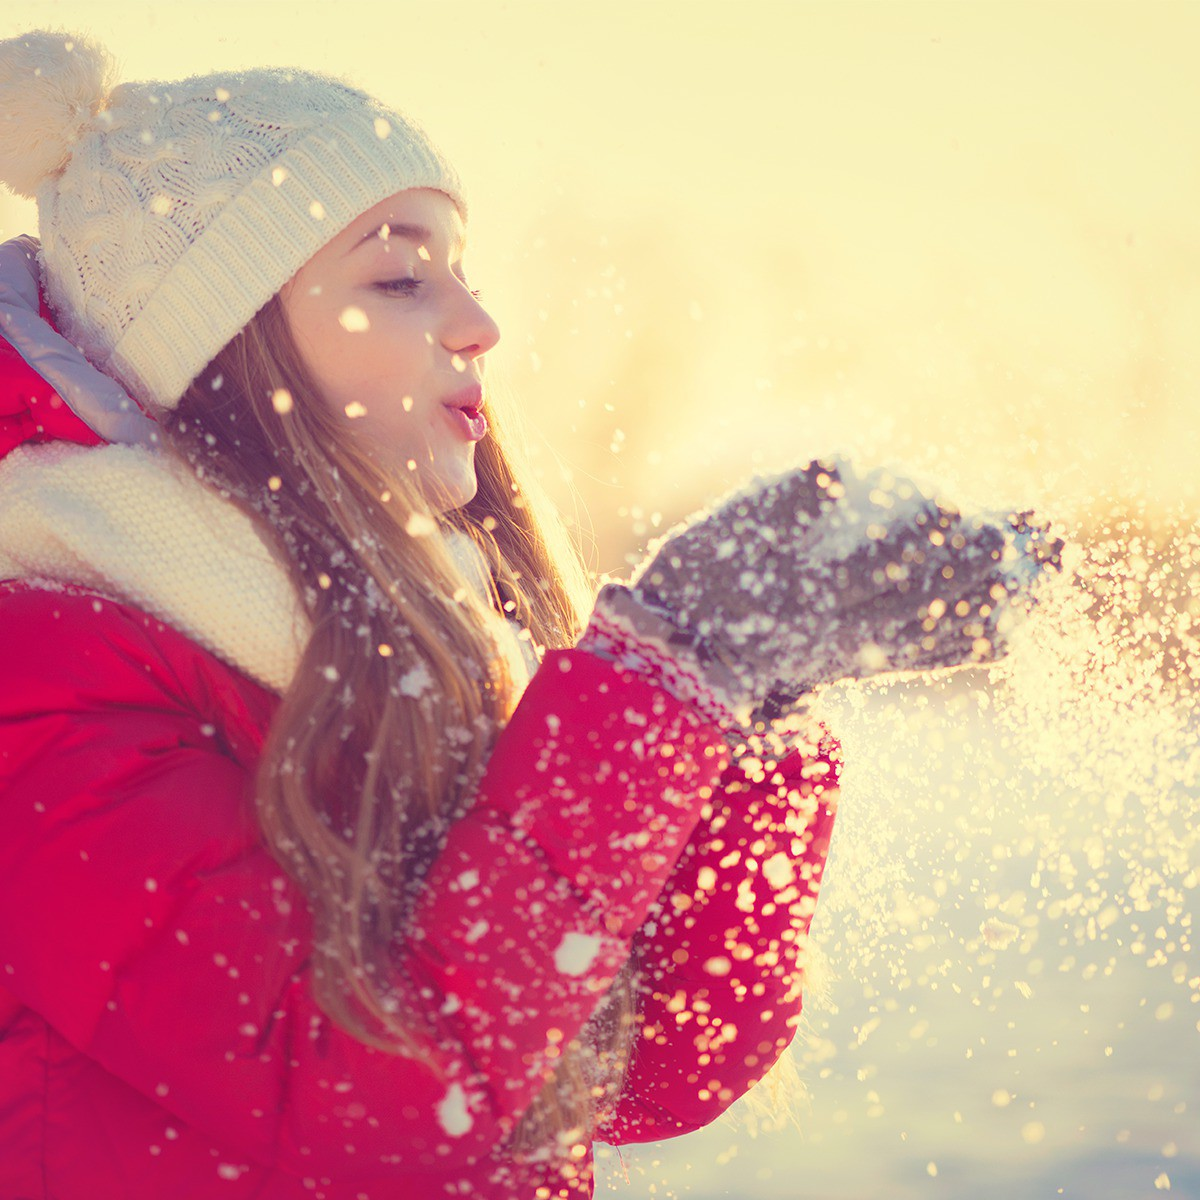 8 tips to make your locks shine this winter